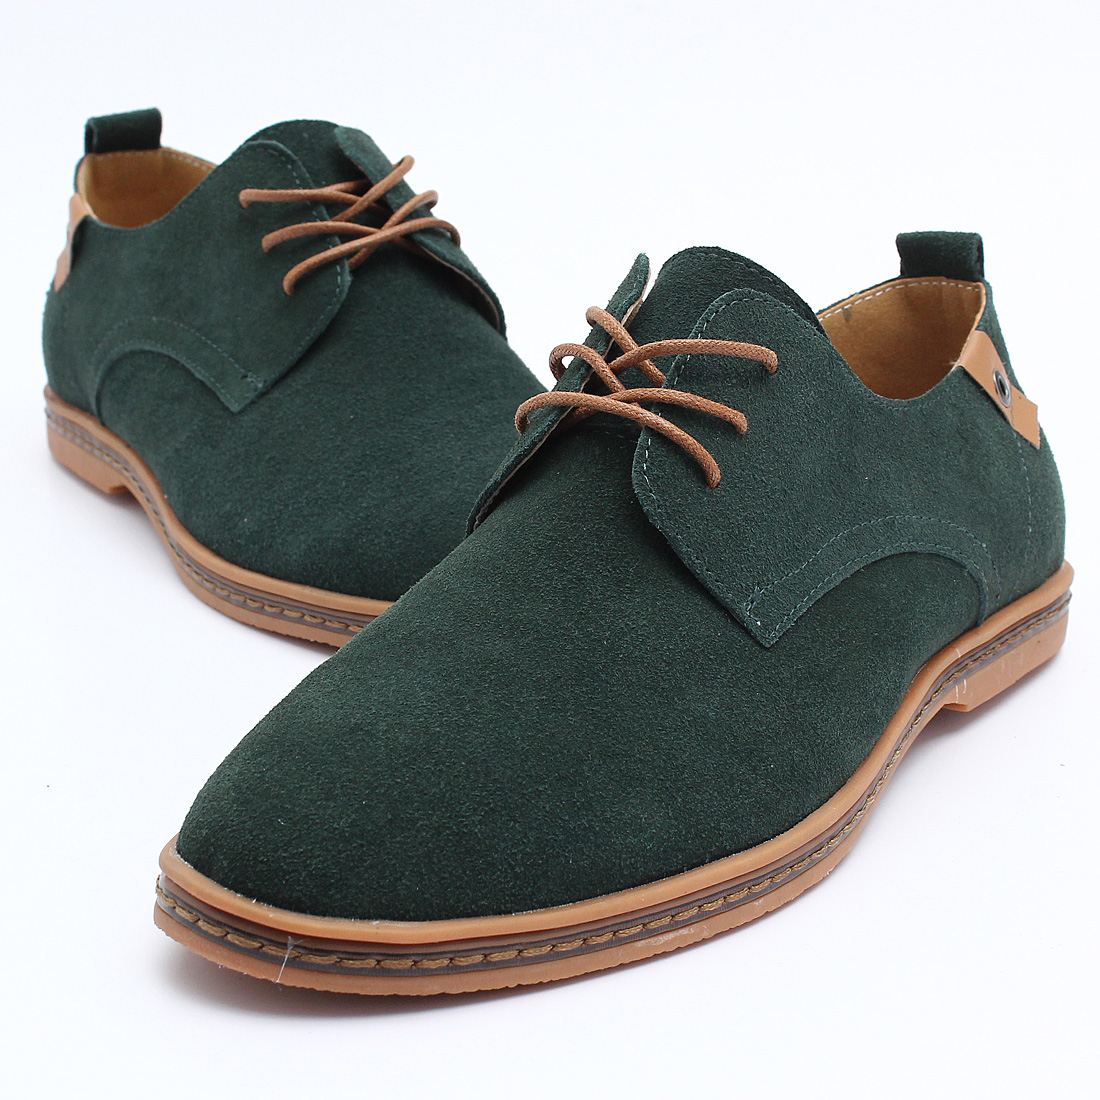 2015 suede european style leather shoes mens oxfords